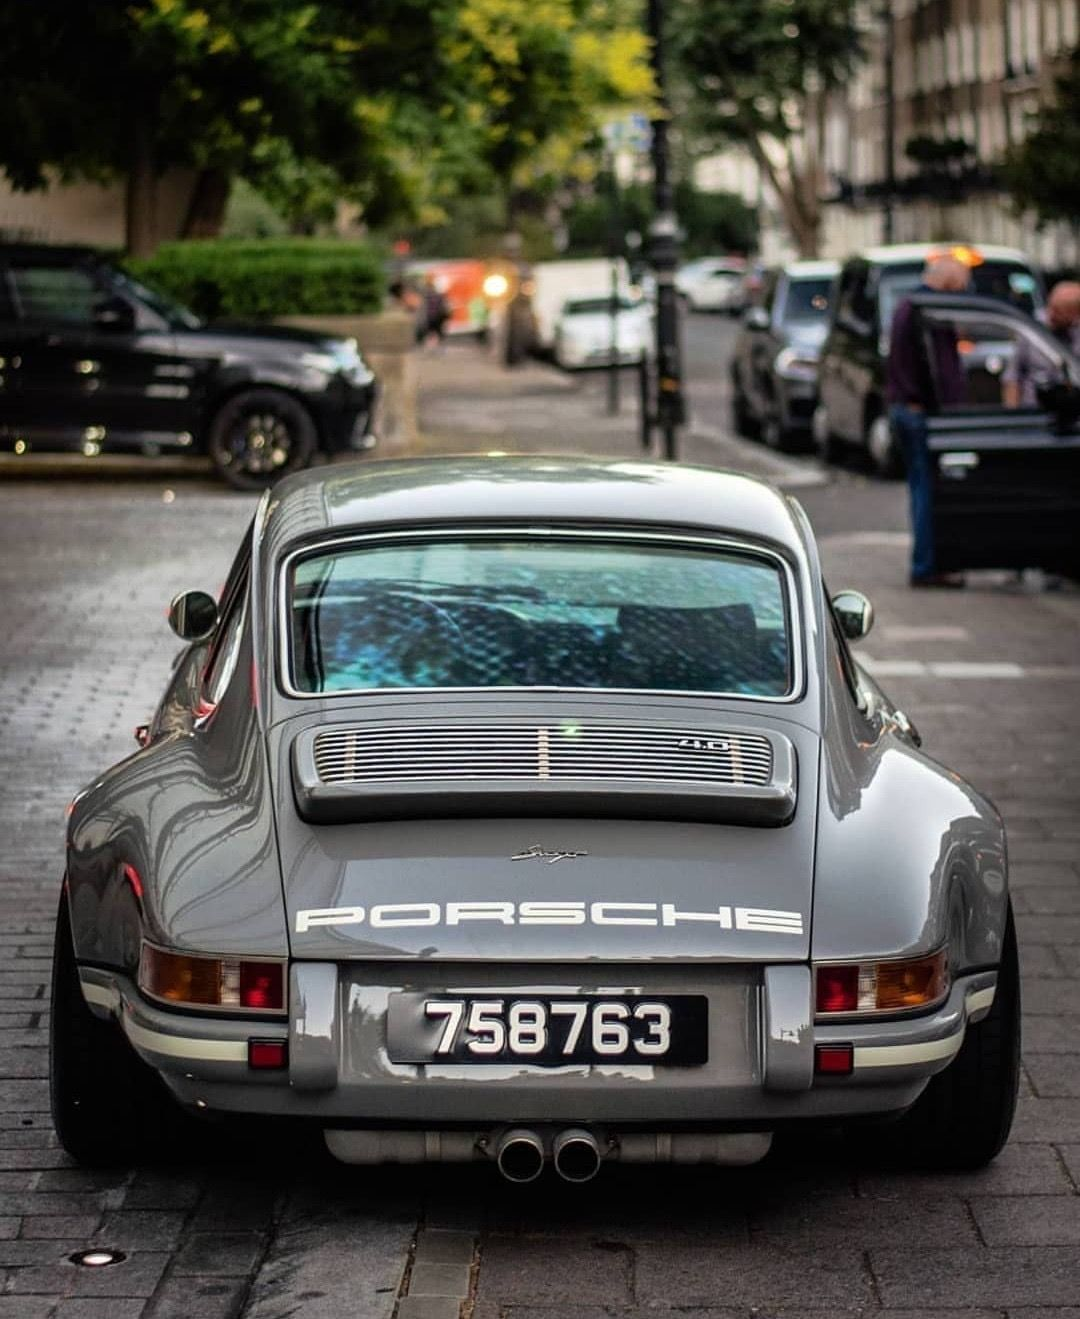 Pin By Ihab Ghosn On Porsche With Images Vintage Porsche Porsche 911 Porsche Sports Car